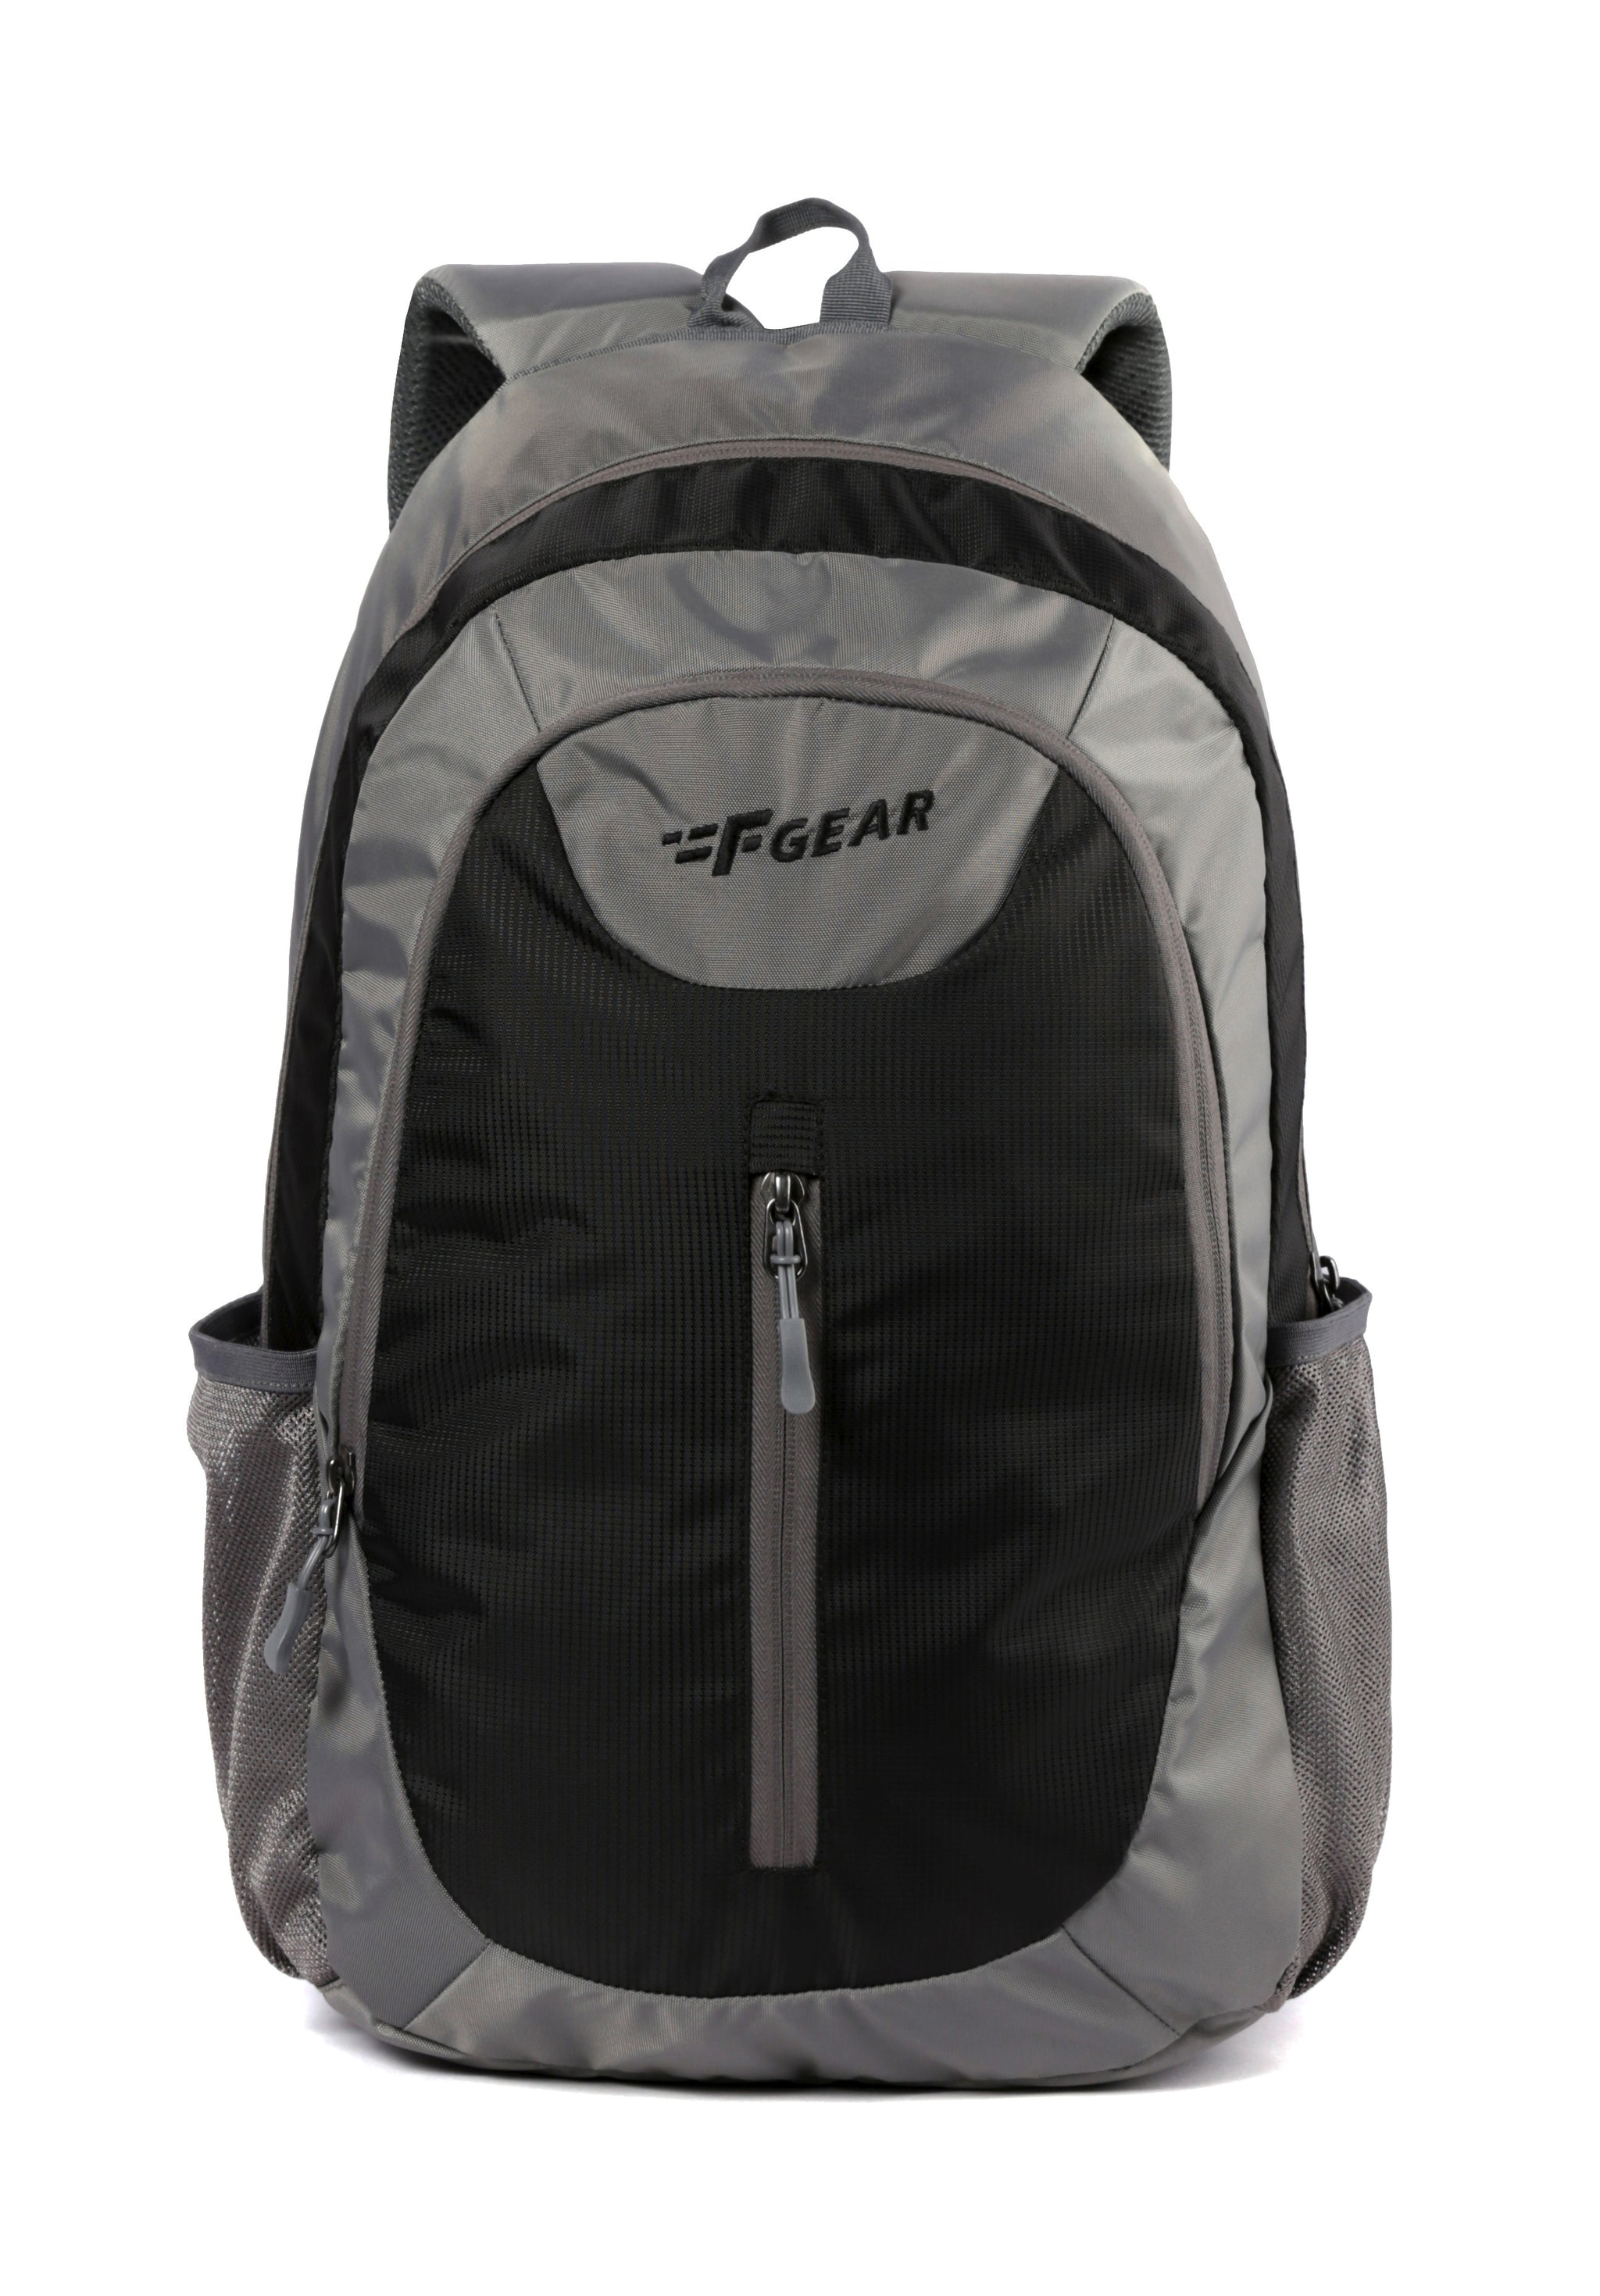 F Gear Arsenal 28 Liters Backpack (Black, Grey)